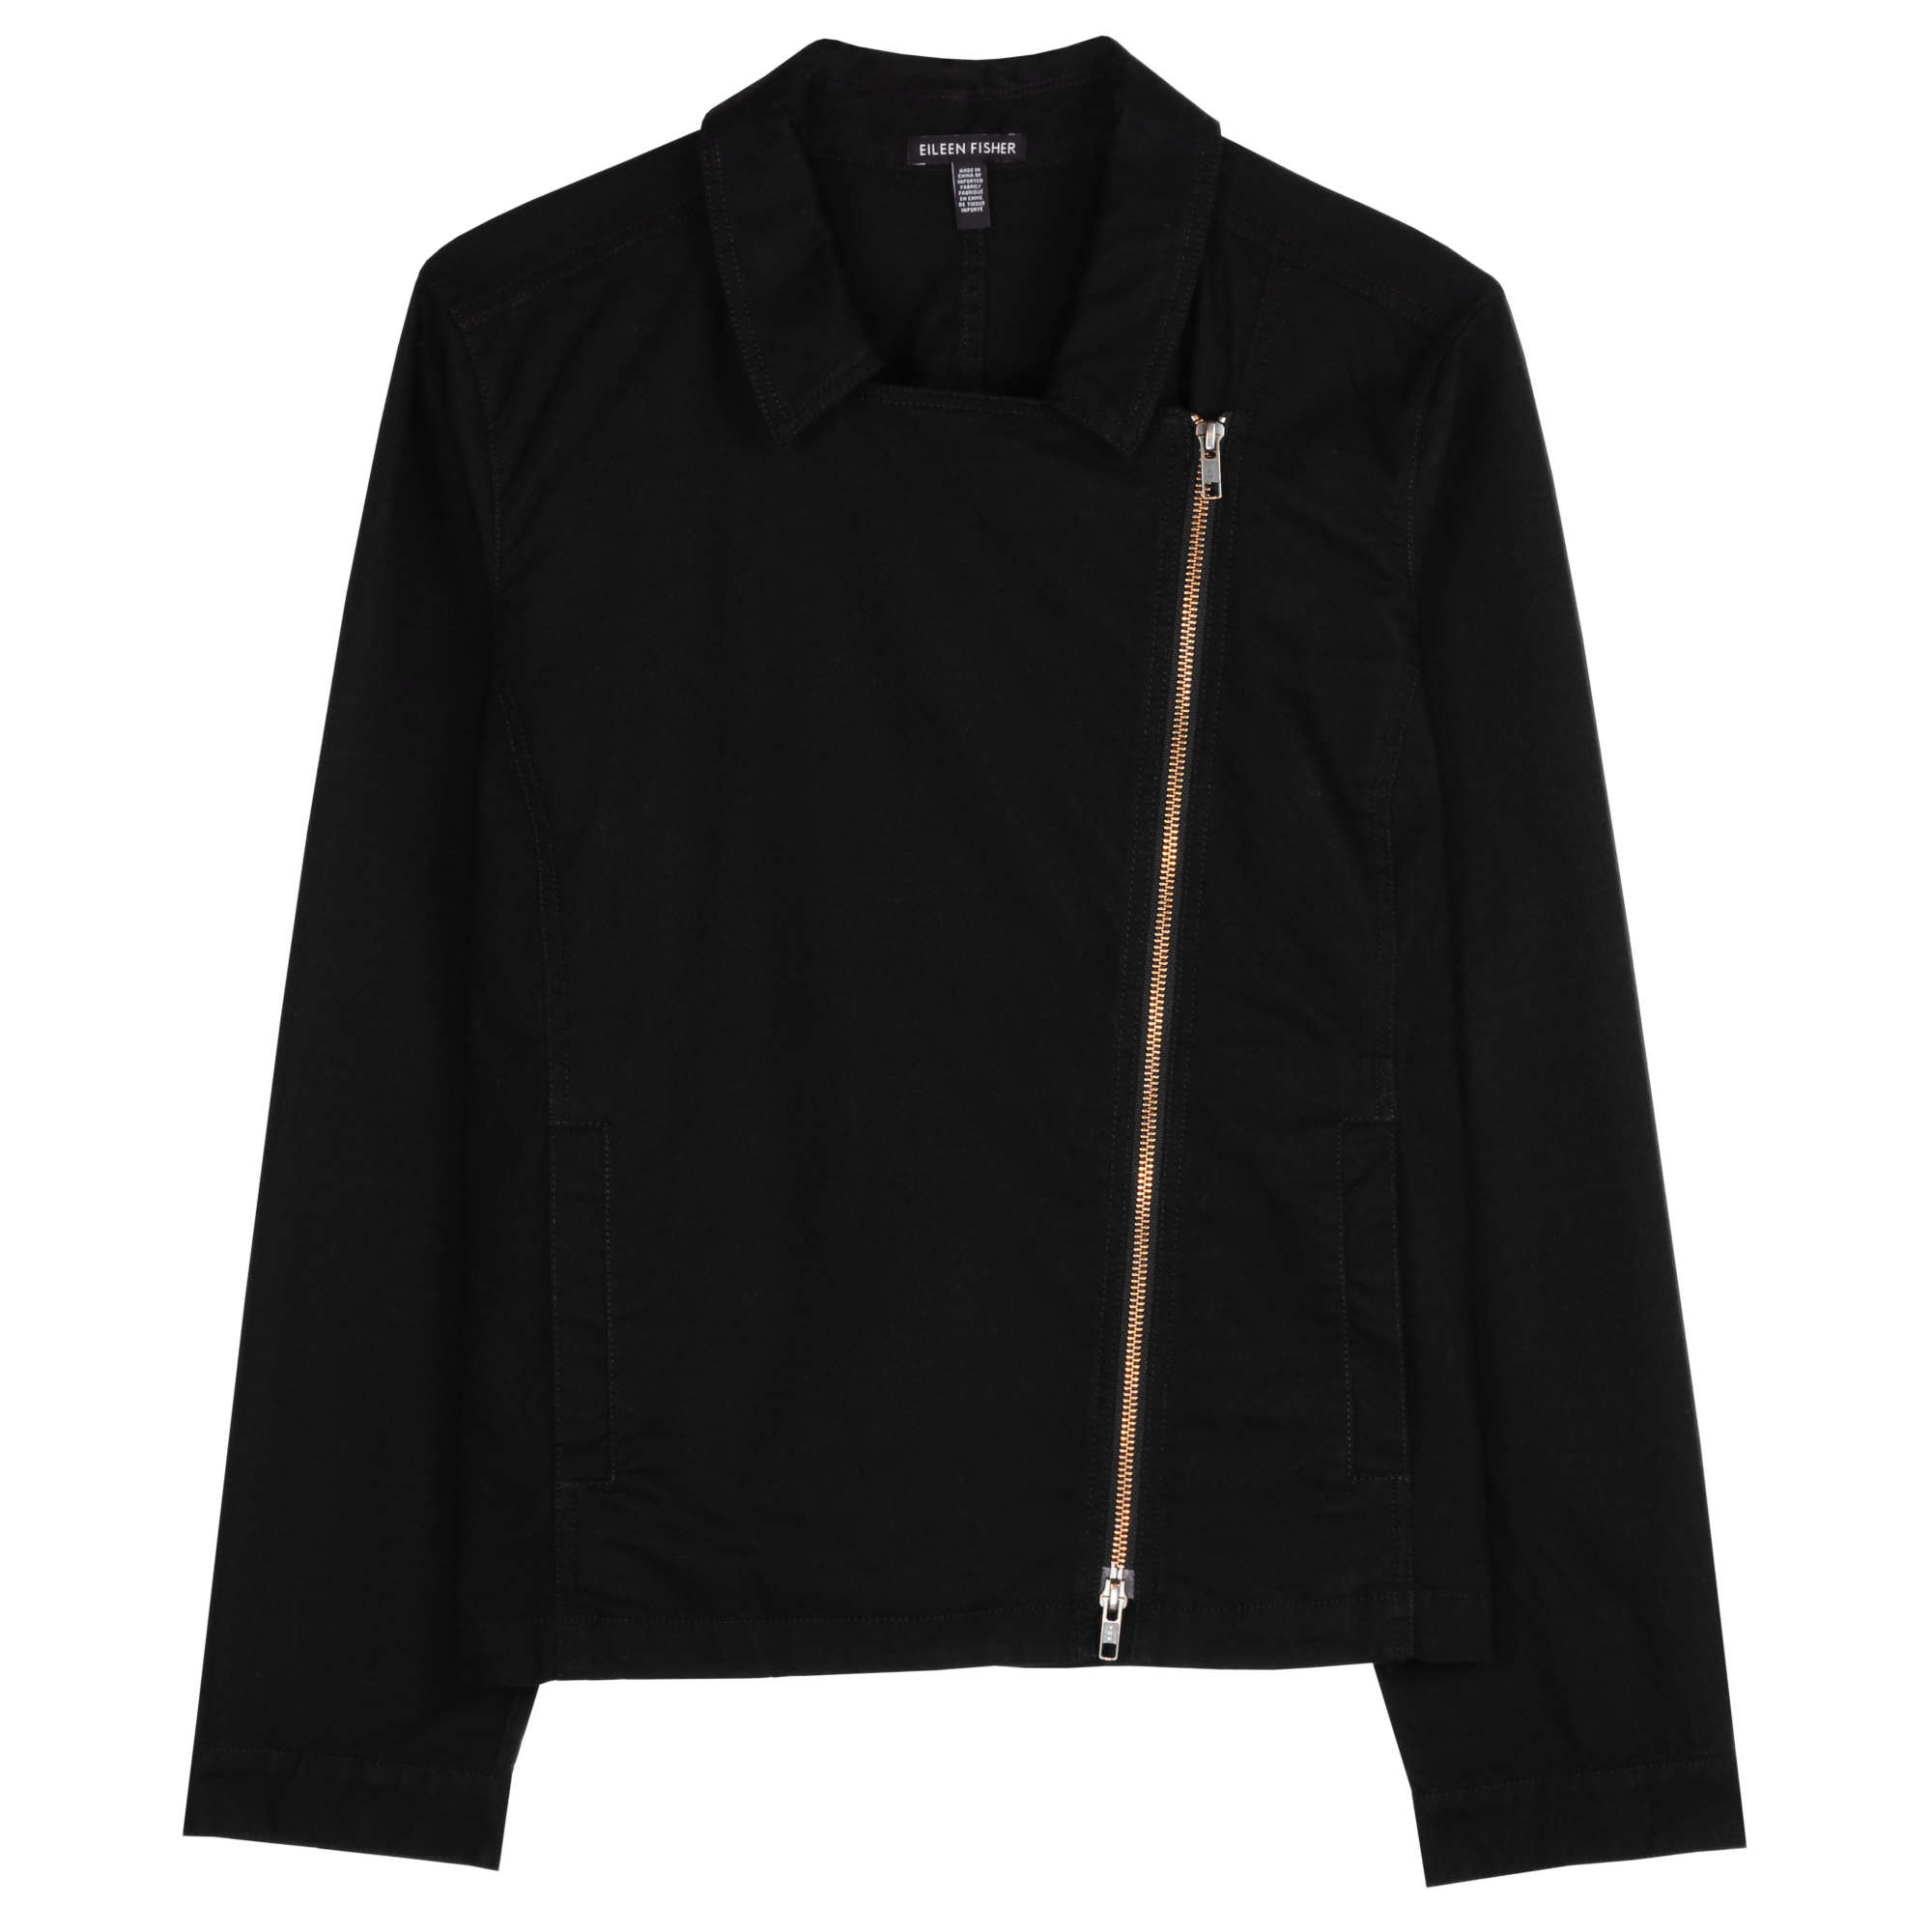 Organic Cotton Stretch Jacquard Jacket